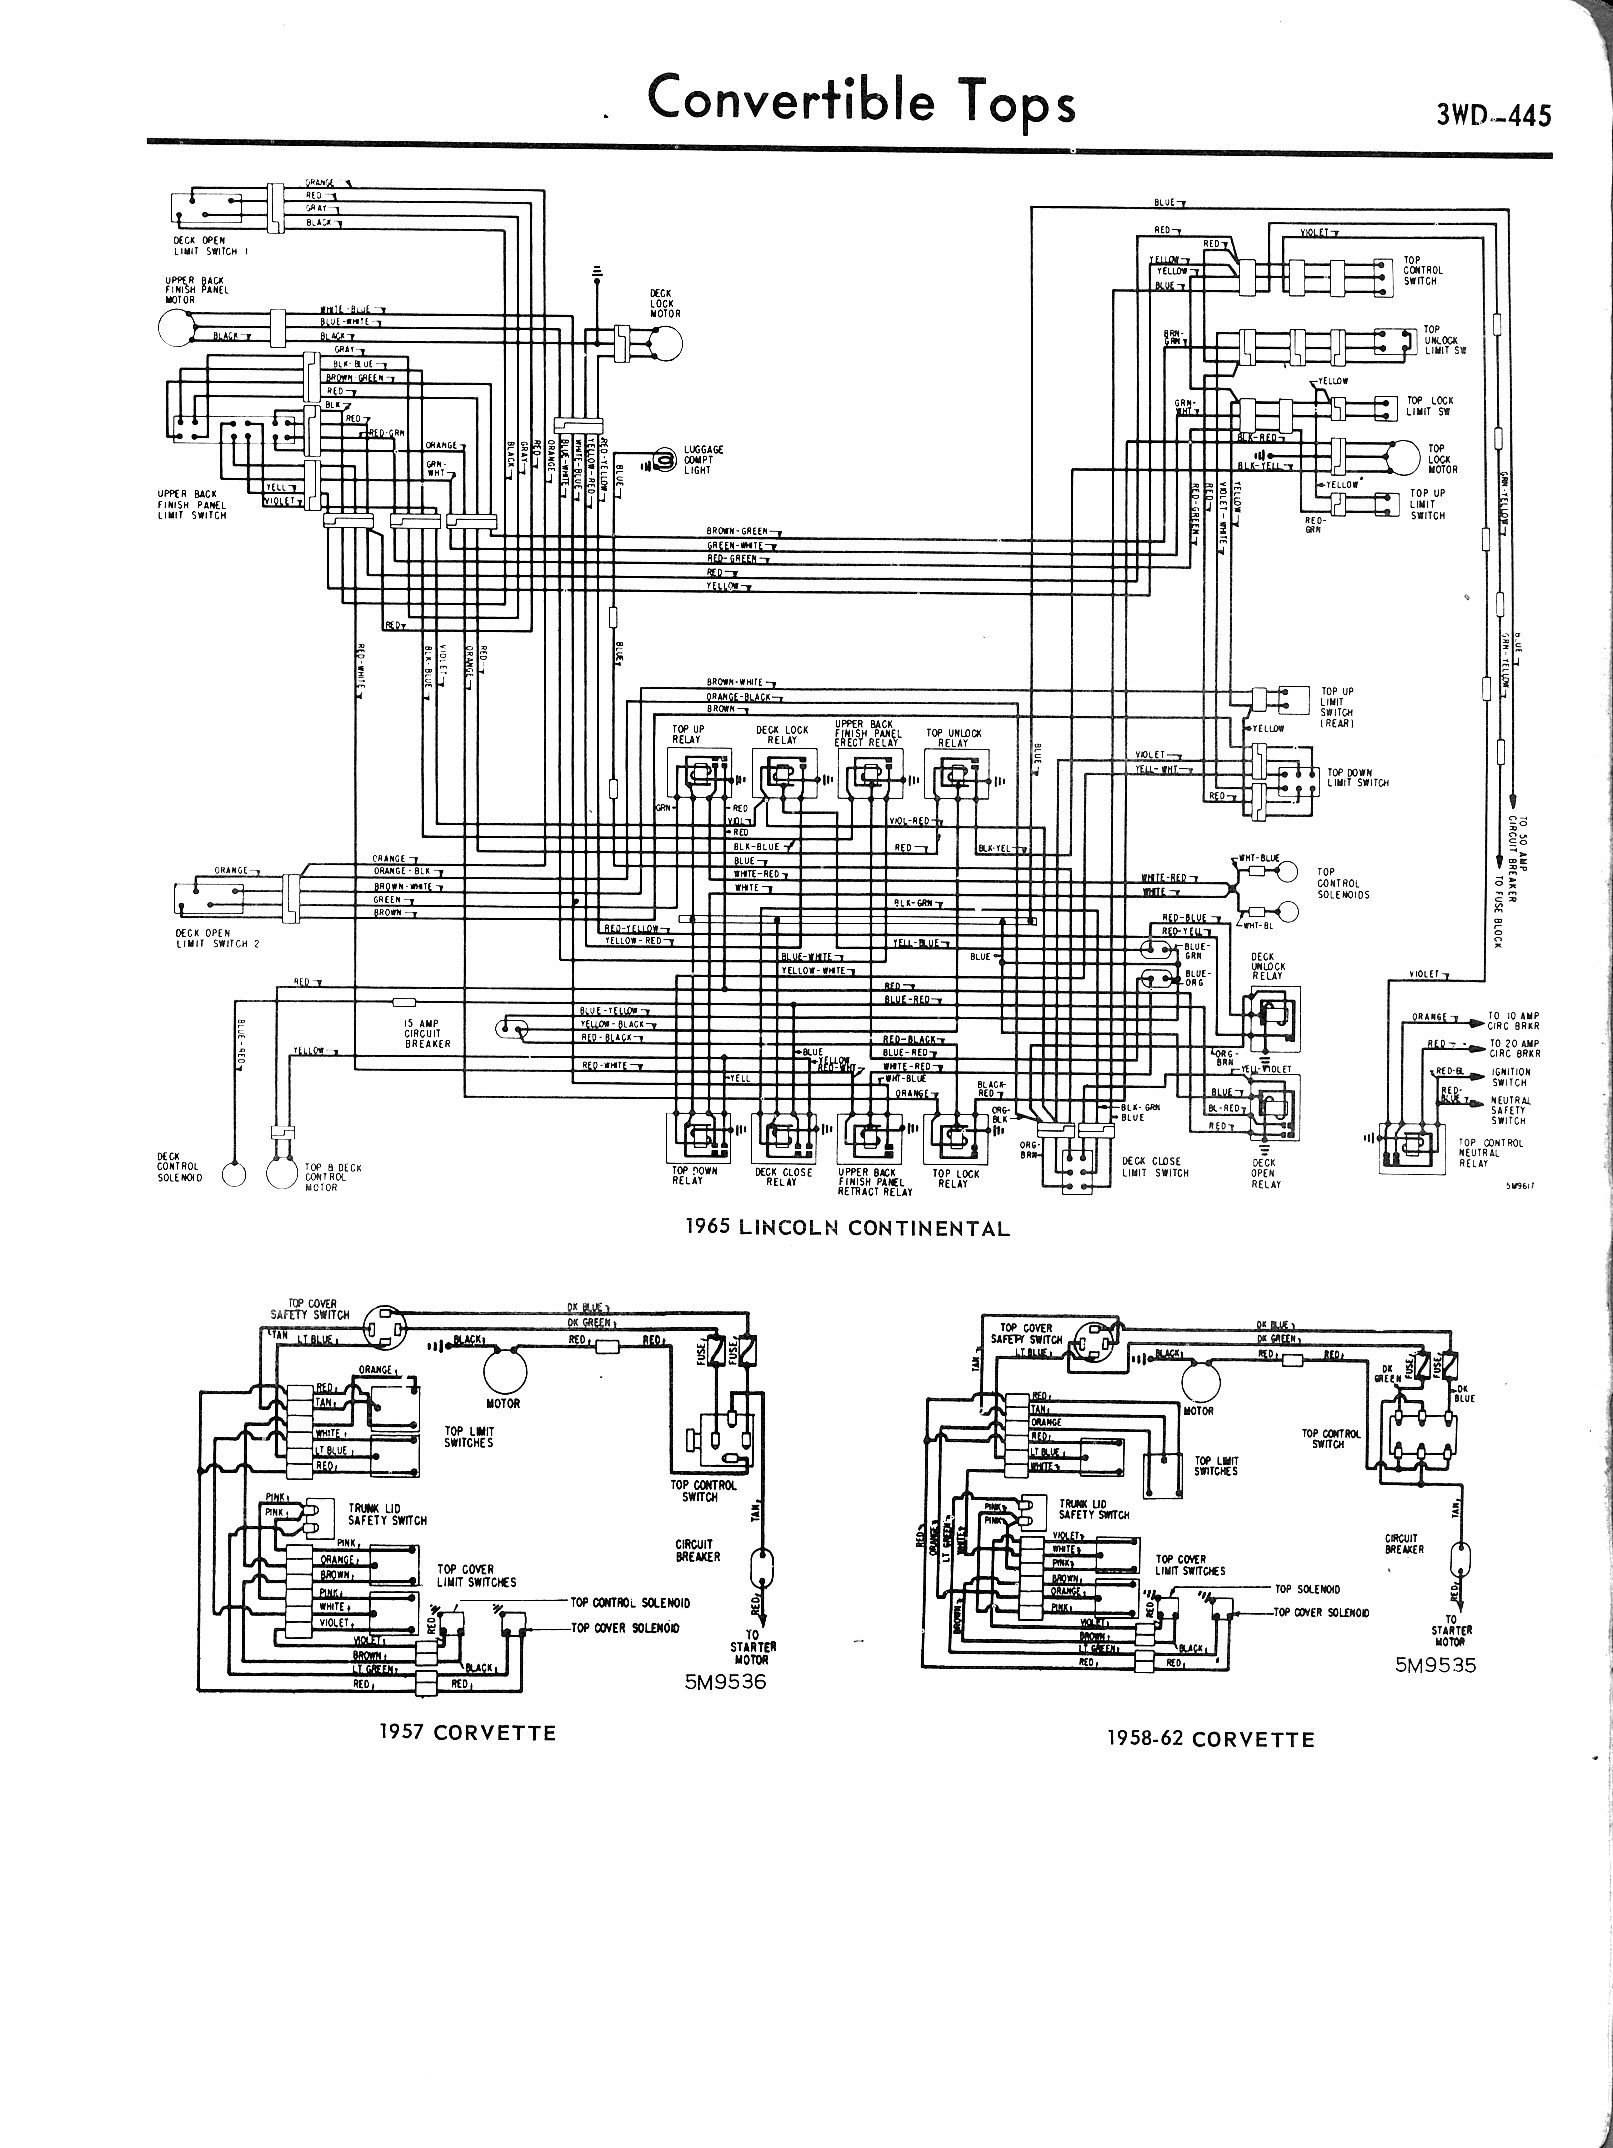 3WD 445_jpg?resize=665%2C886 2000 chevy impala wiring schematic wiring diagram,2003 Chevy Impala Starter Wiring Diagram